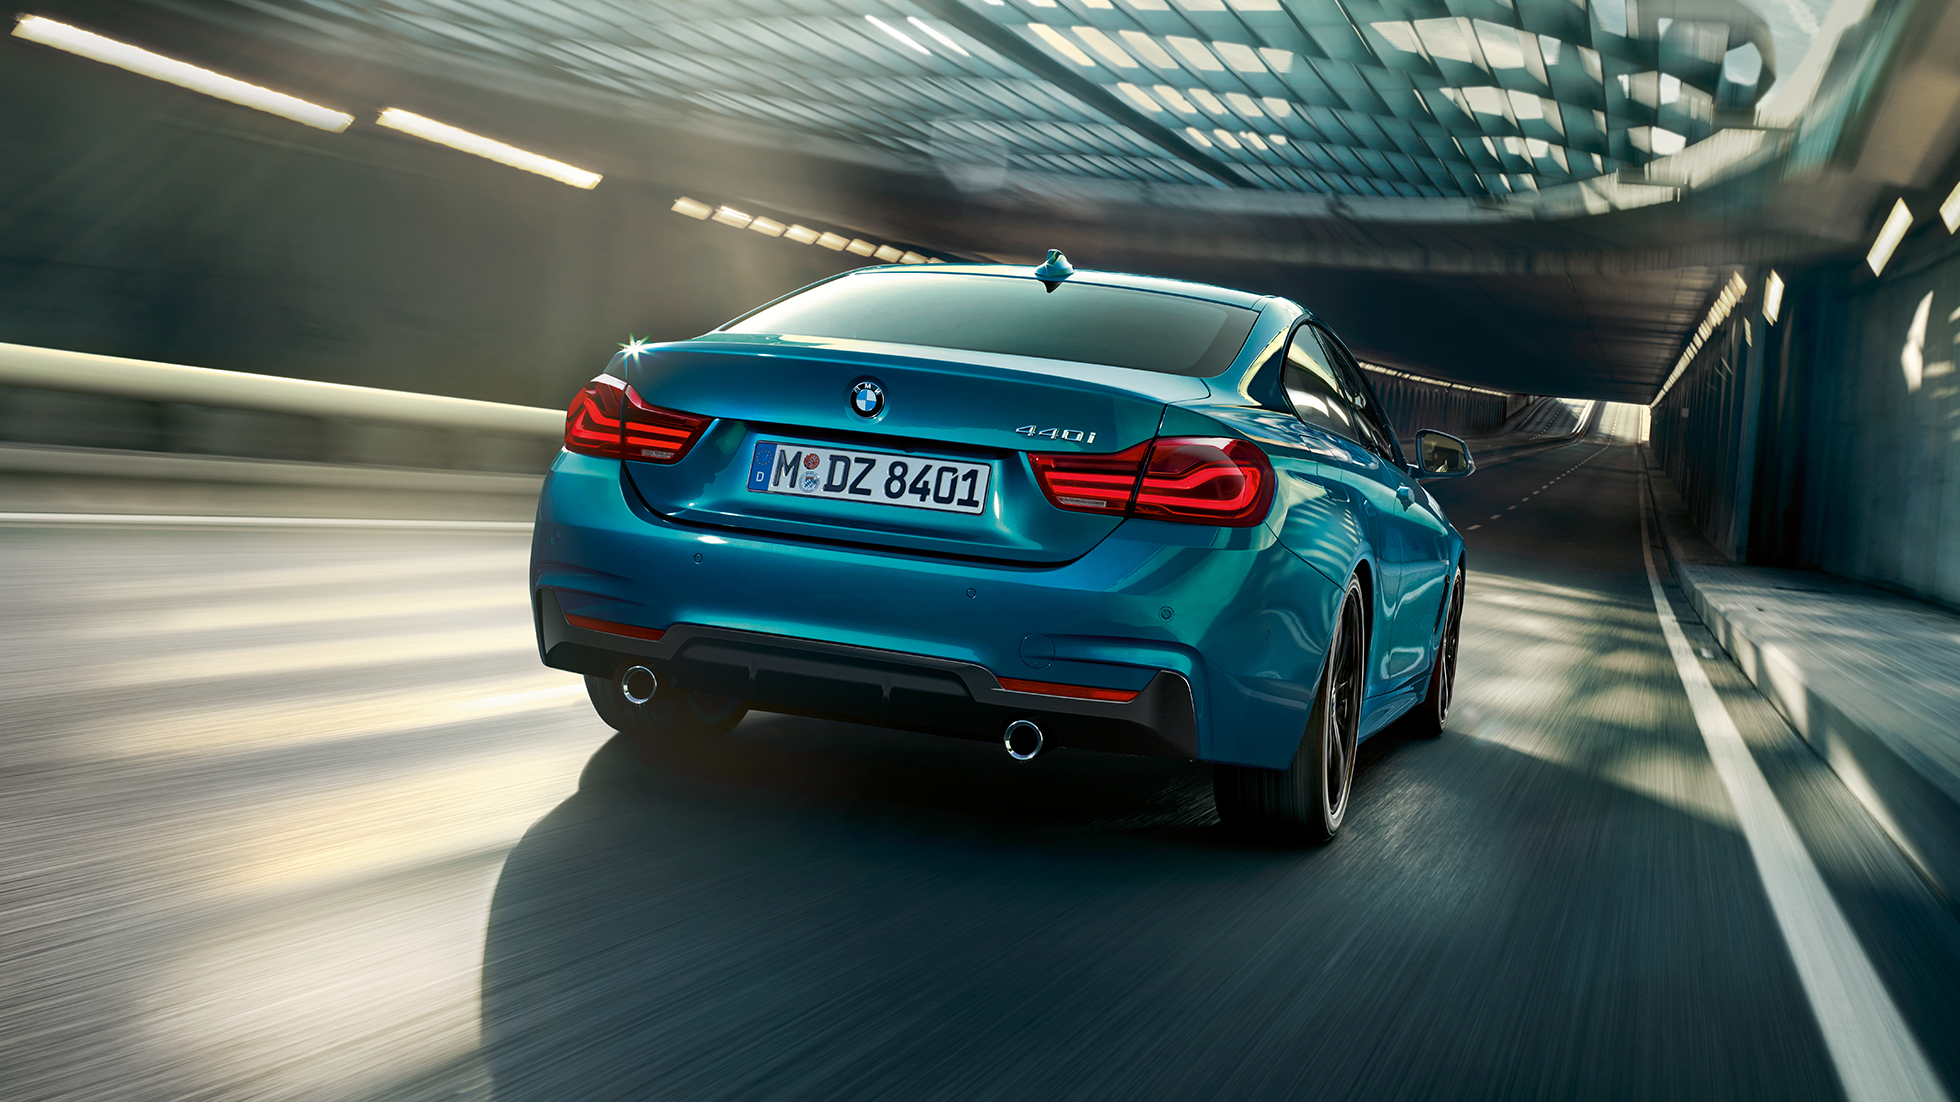 bmw-4-series-coupe-inspire-highlight-desktop-03